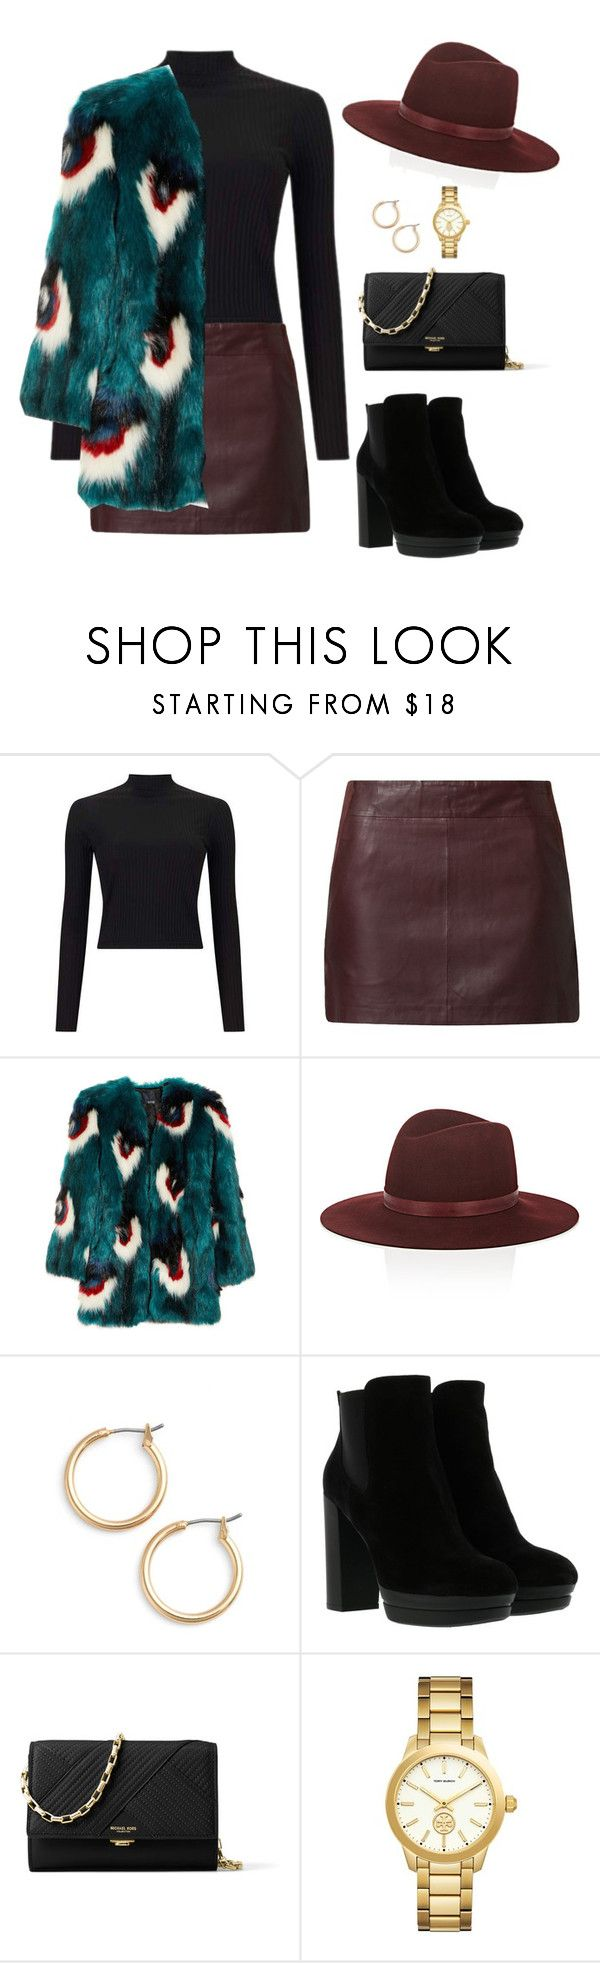 """""""Outfit"""" by caa123 ❤ liked on Polyvore featuring Miss Selfridge, Naf Naf, Meadham Kirchhoff, Janessa Leone, Nordstrom, Hogan, Michael Kors and Versace"""